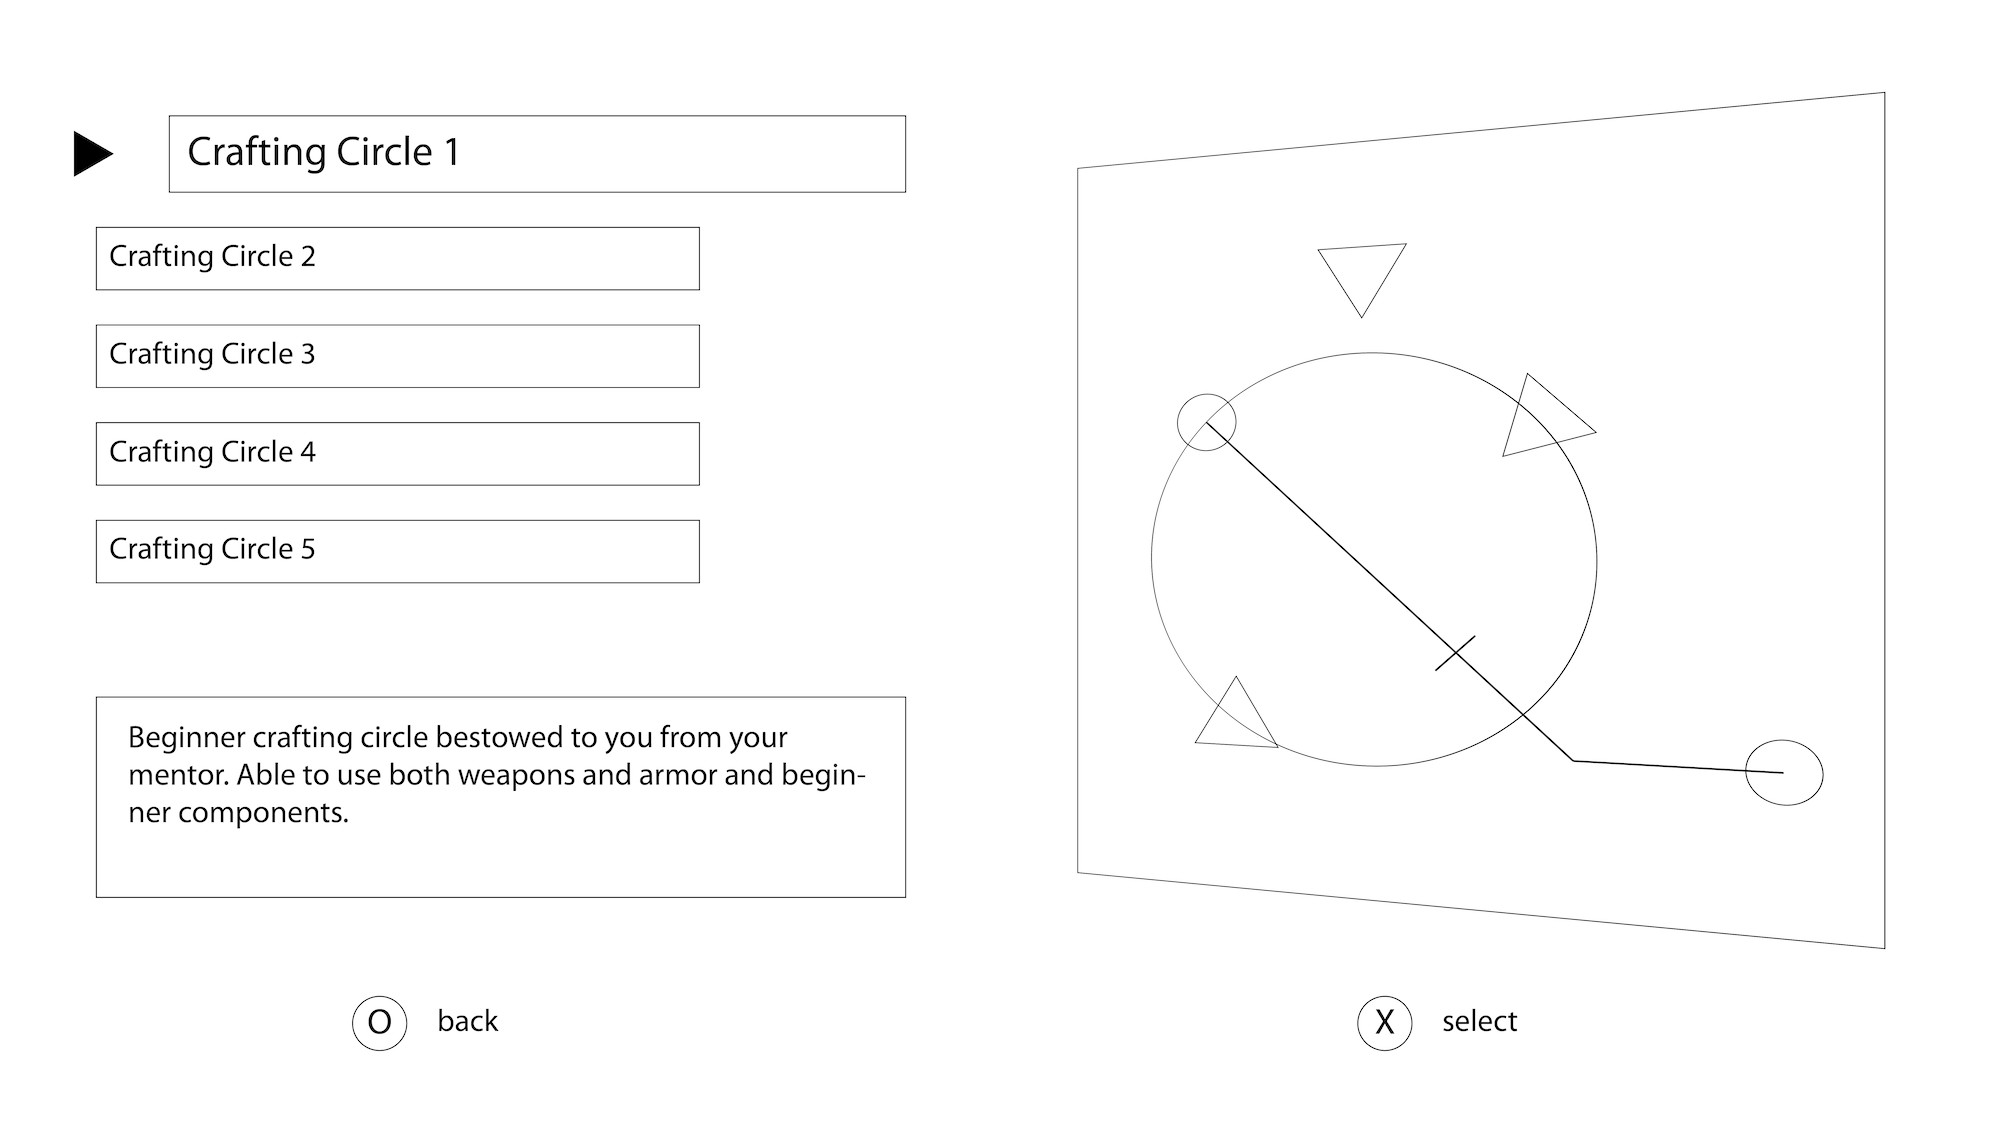 After thumbnail sketches, digital wireframes created to figure out the user experience.